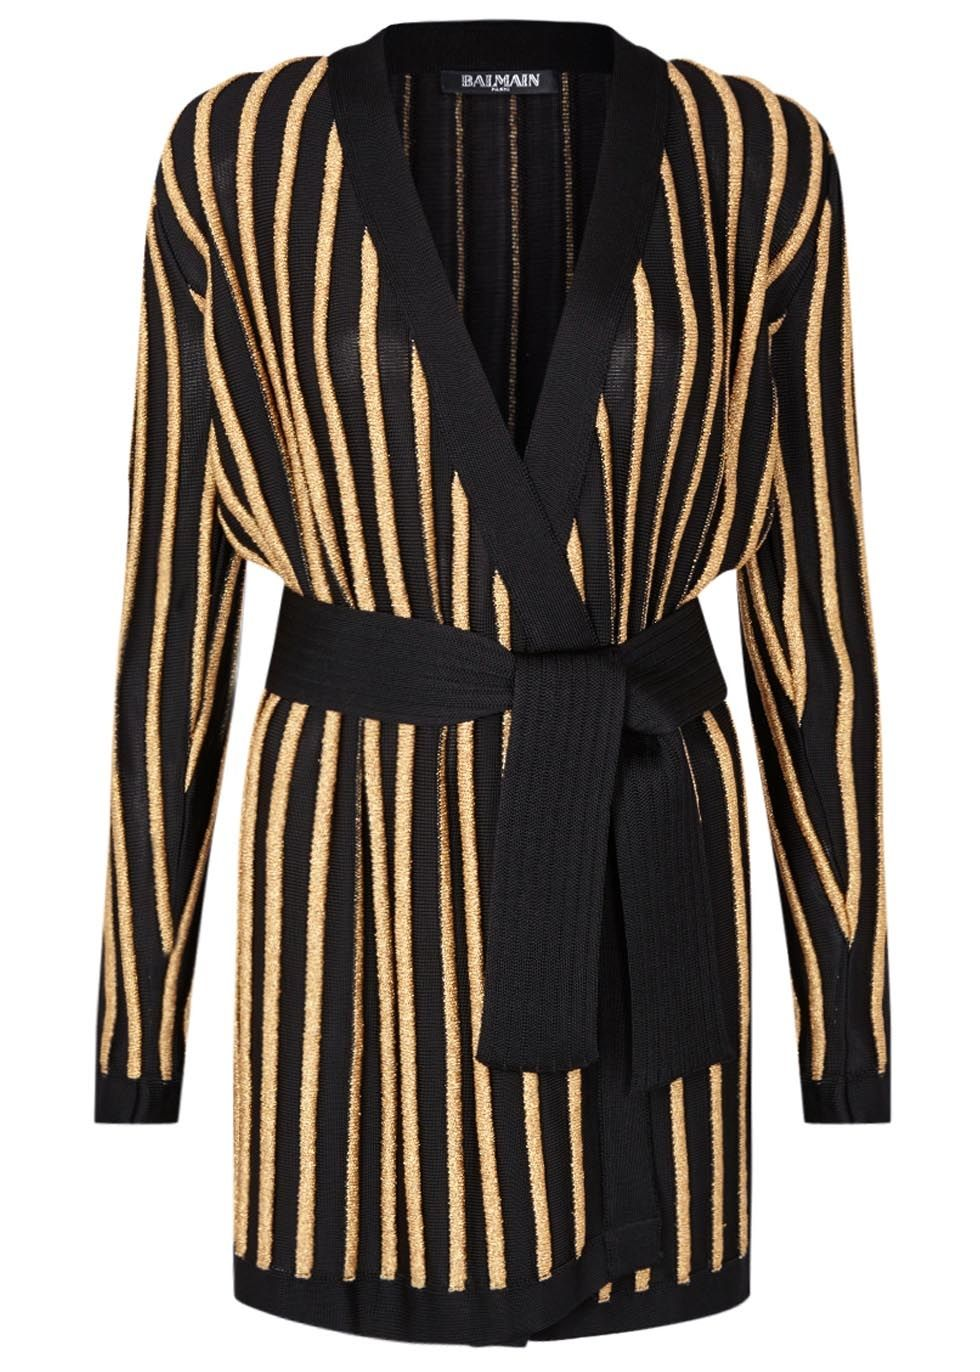 Balmain black and gold viscose blend cardigan Striped, | Simply ...